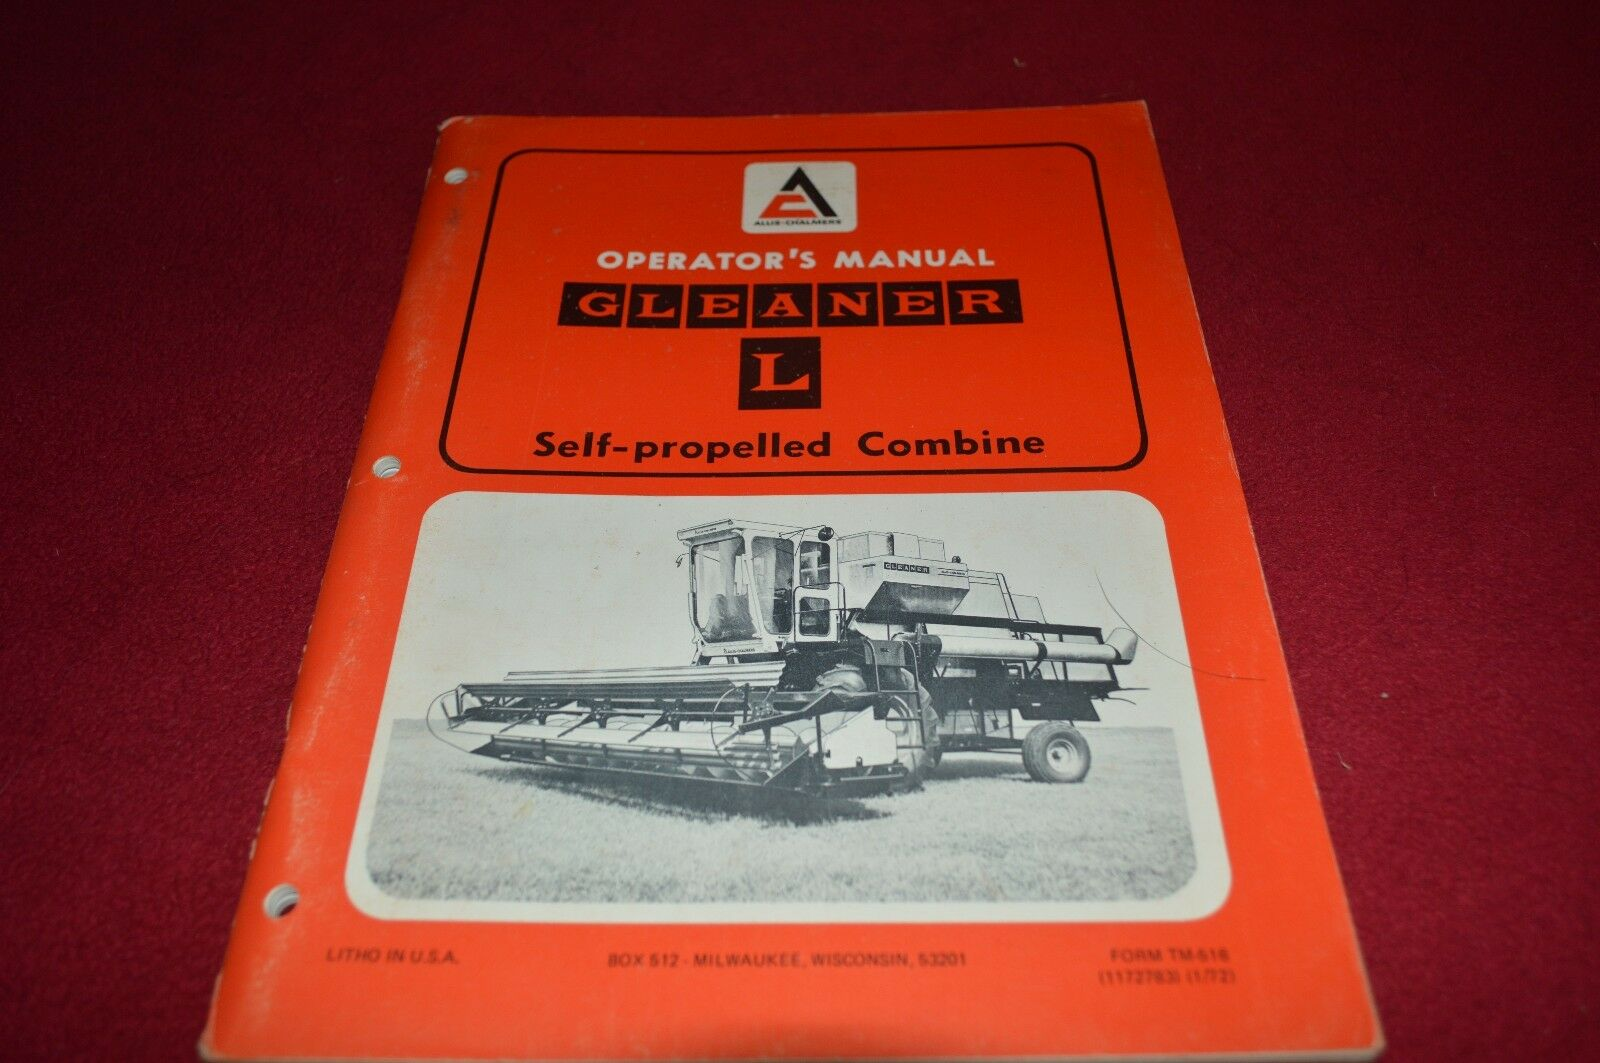 Allis Chalmers L Gleaner Combine Operator's Manual DCPA6 1 of 1Only 1  available See More